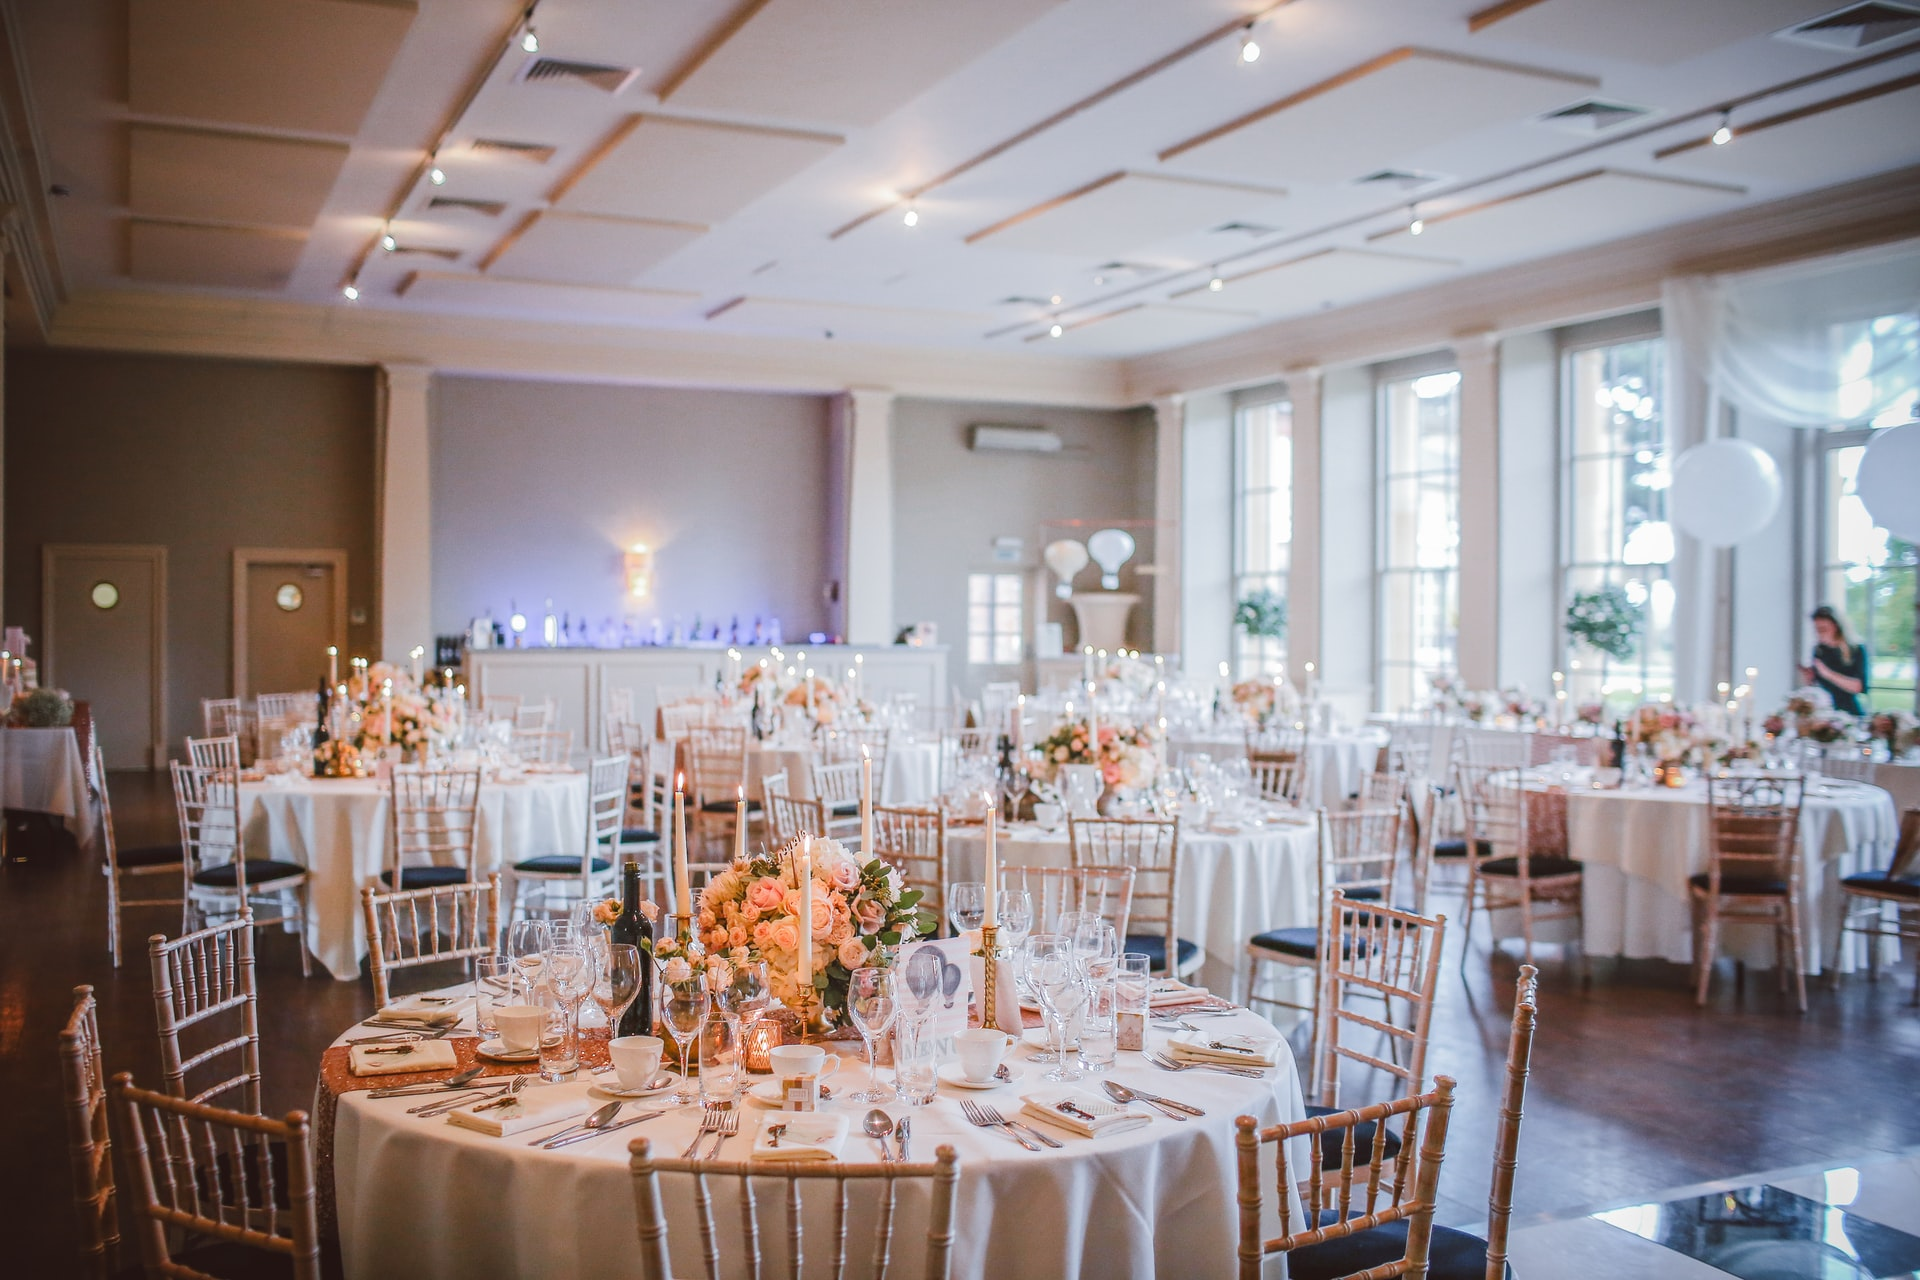 A photo of a wedding seating floor